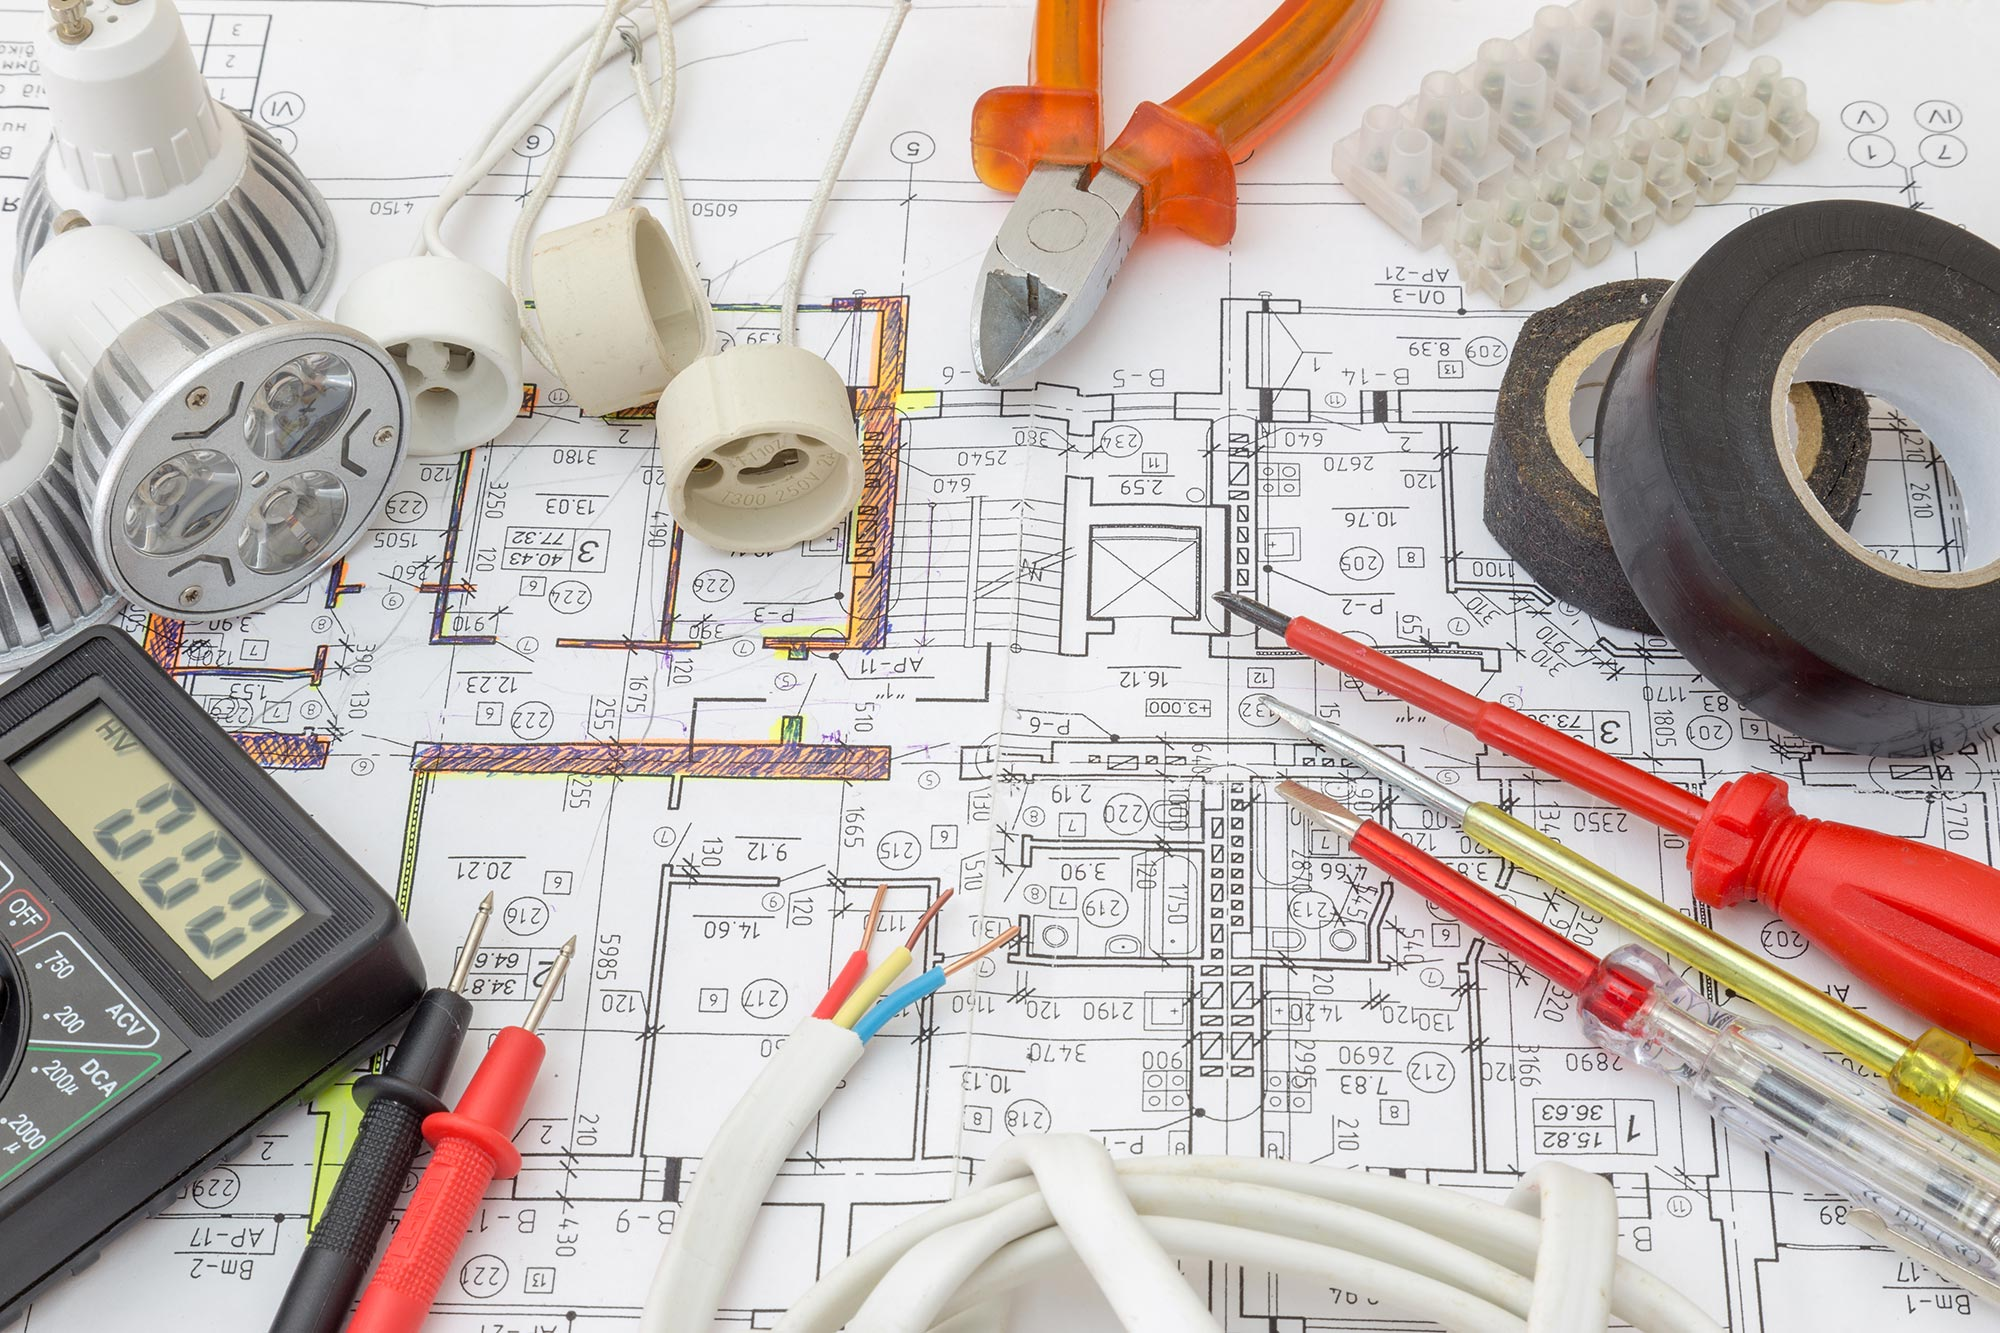 Building plans and tools